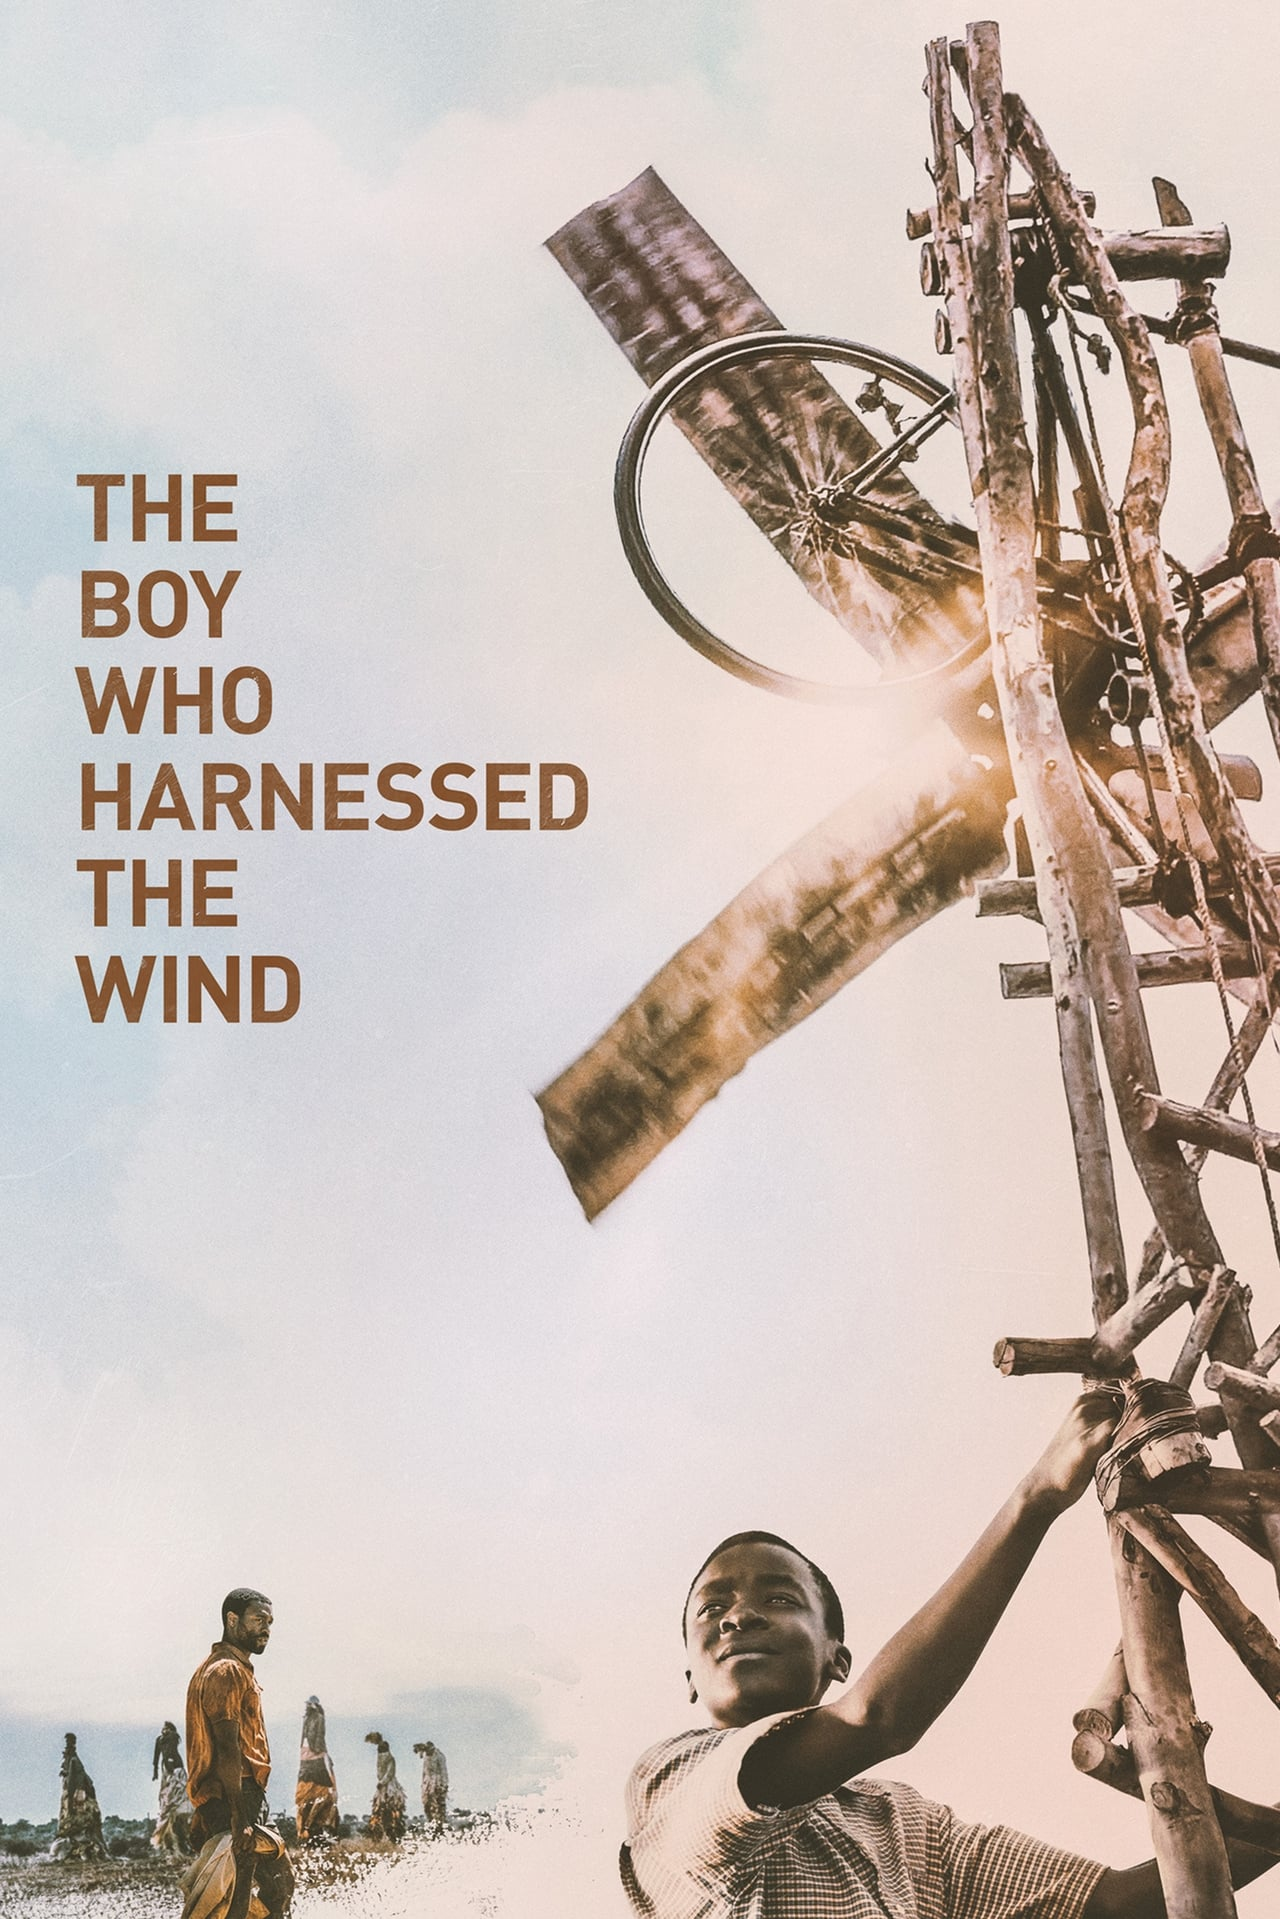 The Boy Who Harnessed The Wind image